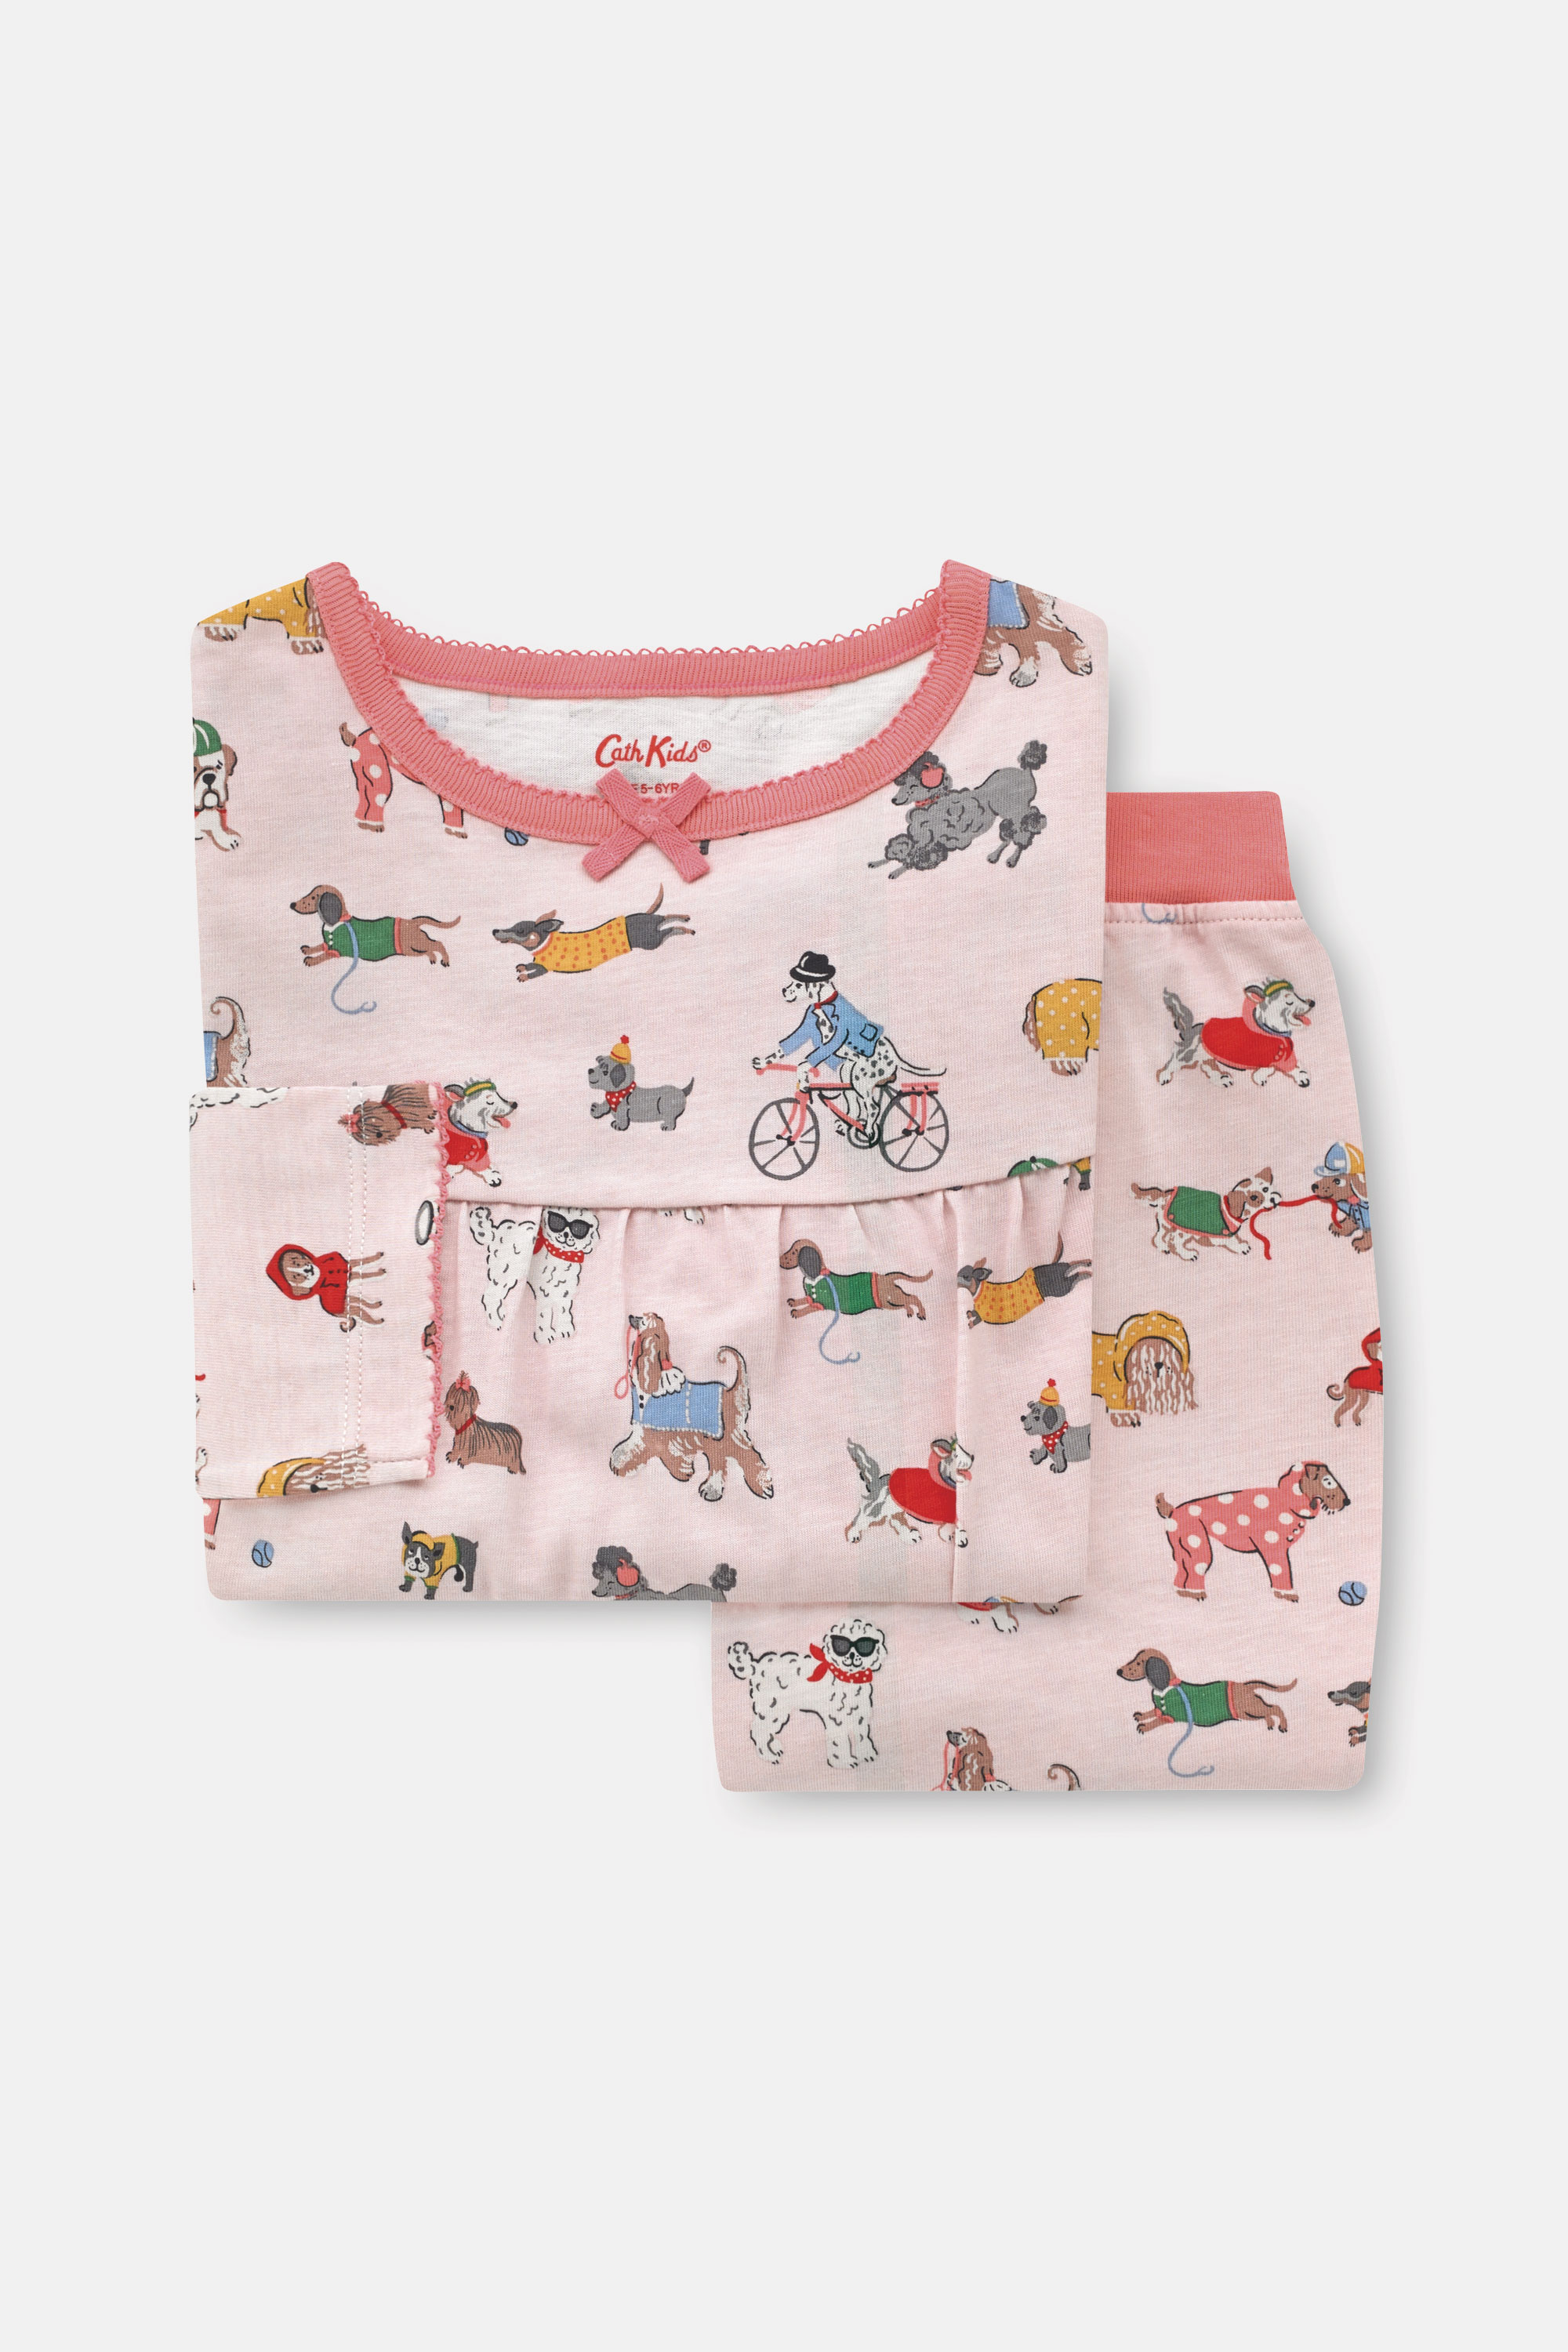 Cath Kidston Small Park Dogs Long Sleeve Jersey Pyjamas in Soft Pink, 5-6 yr